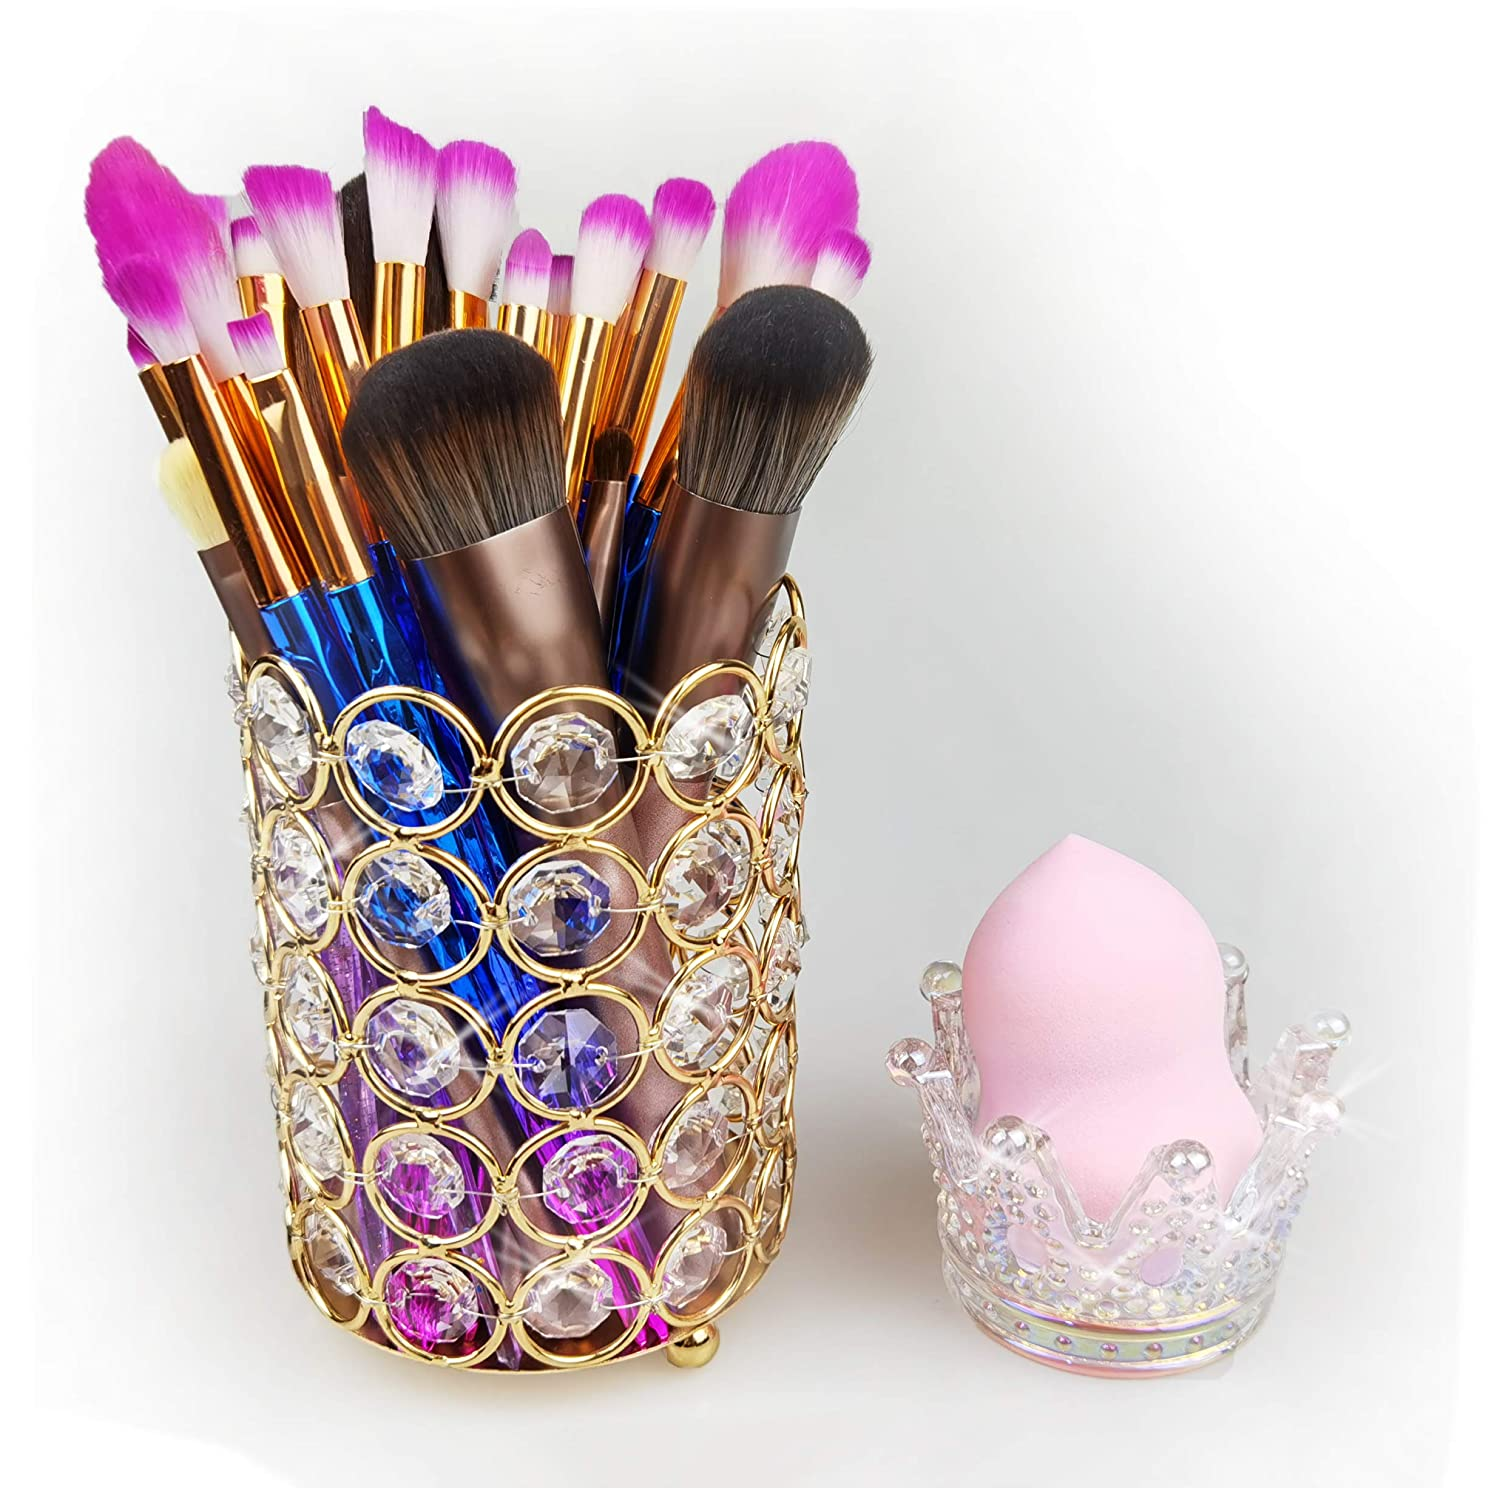 Crystal Makeup Brush Holder + Beauty Sponge Blender Crown Glassware Holder, Multi-function Sparkly Crystal Makeup Organizer Set Bling Brush Container & Ambilight Flame Puff Drying Stand, Gold+ Clear